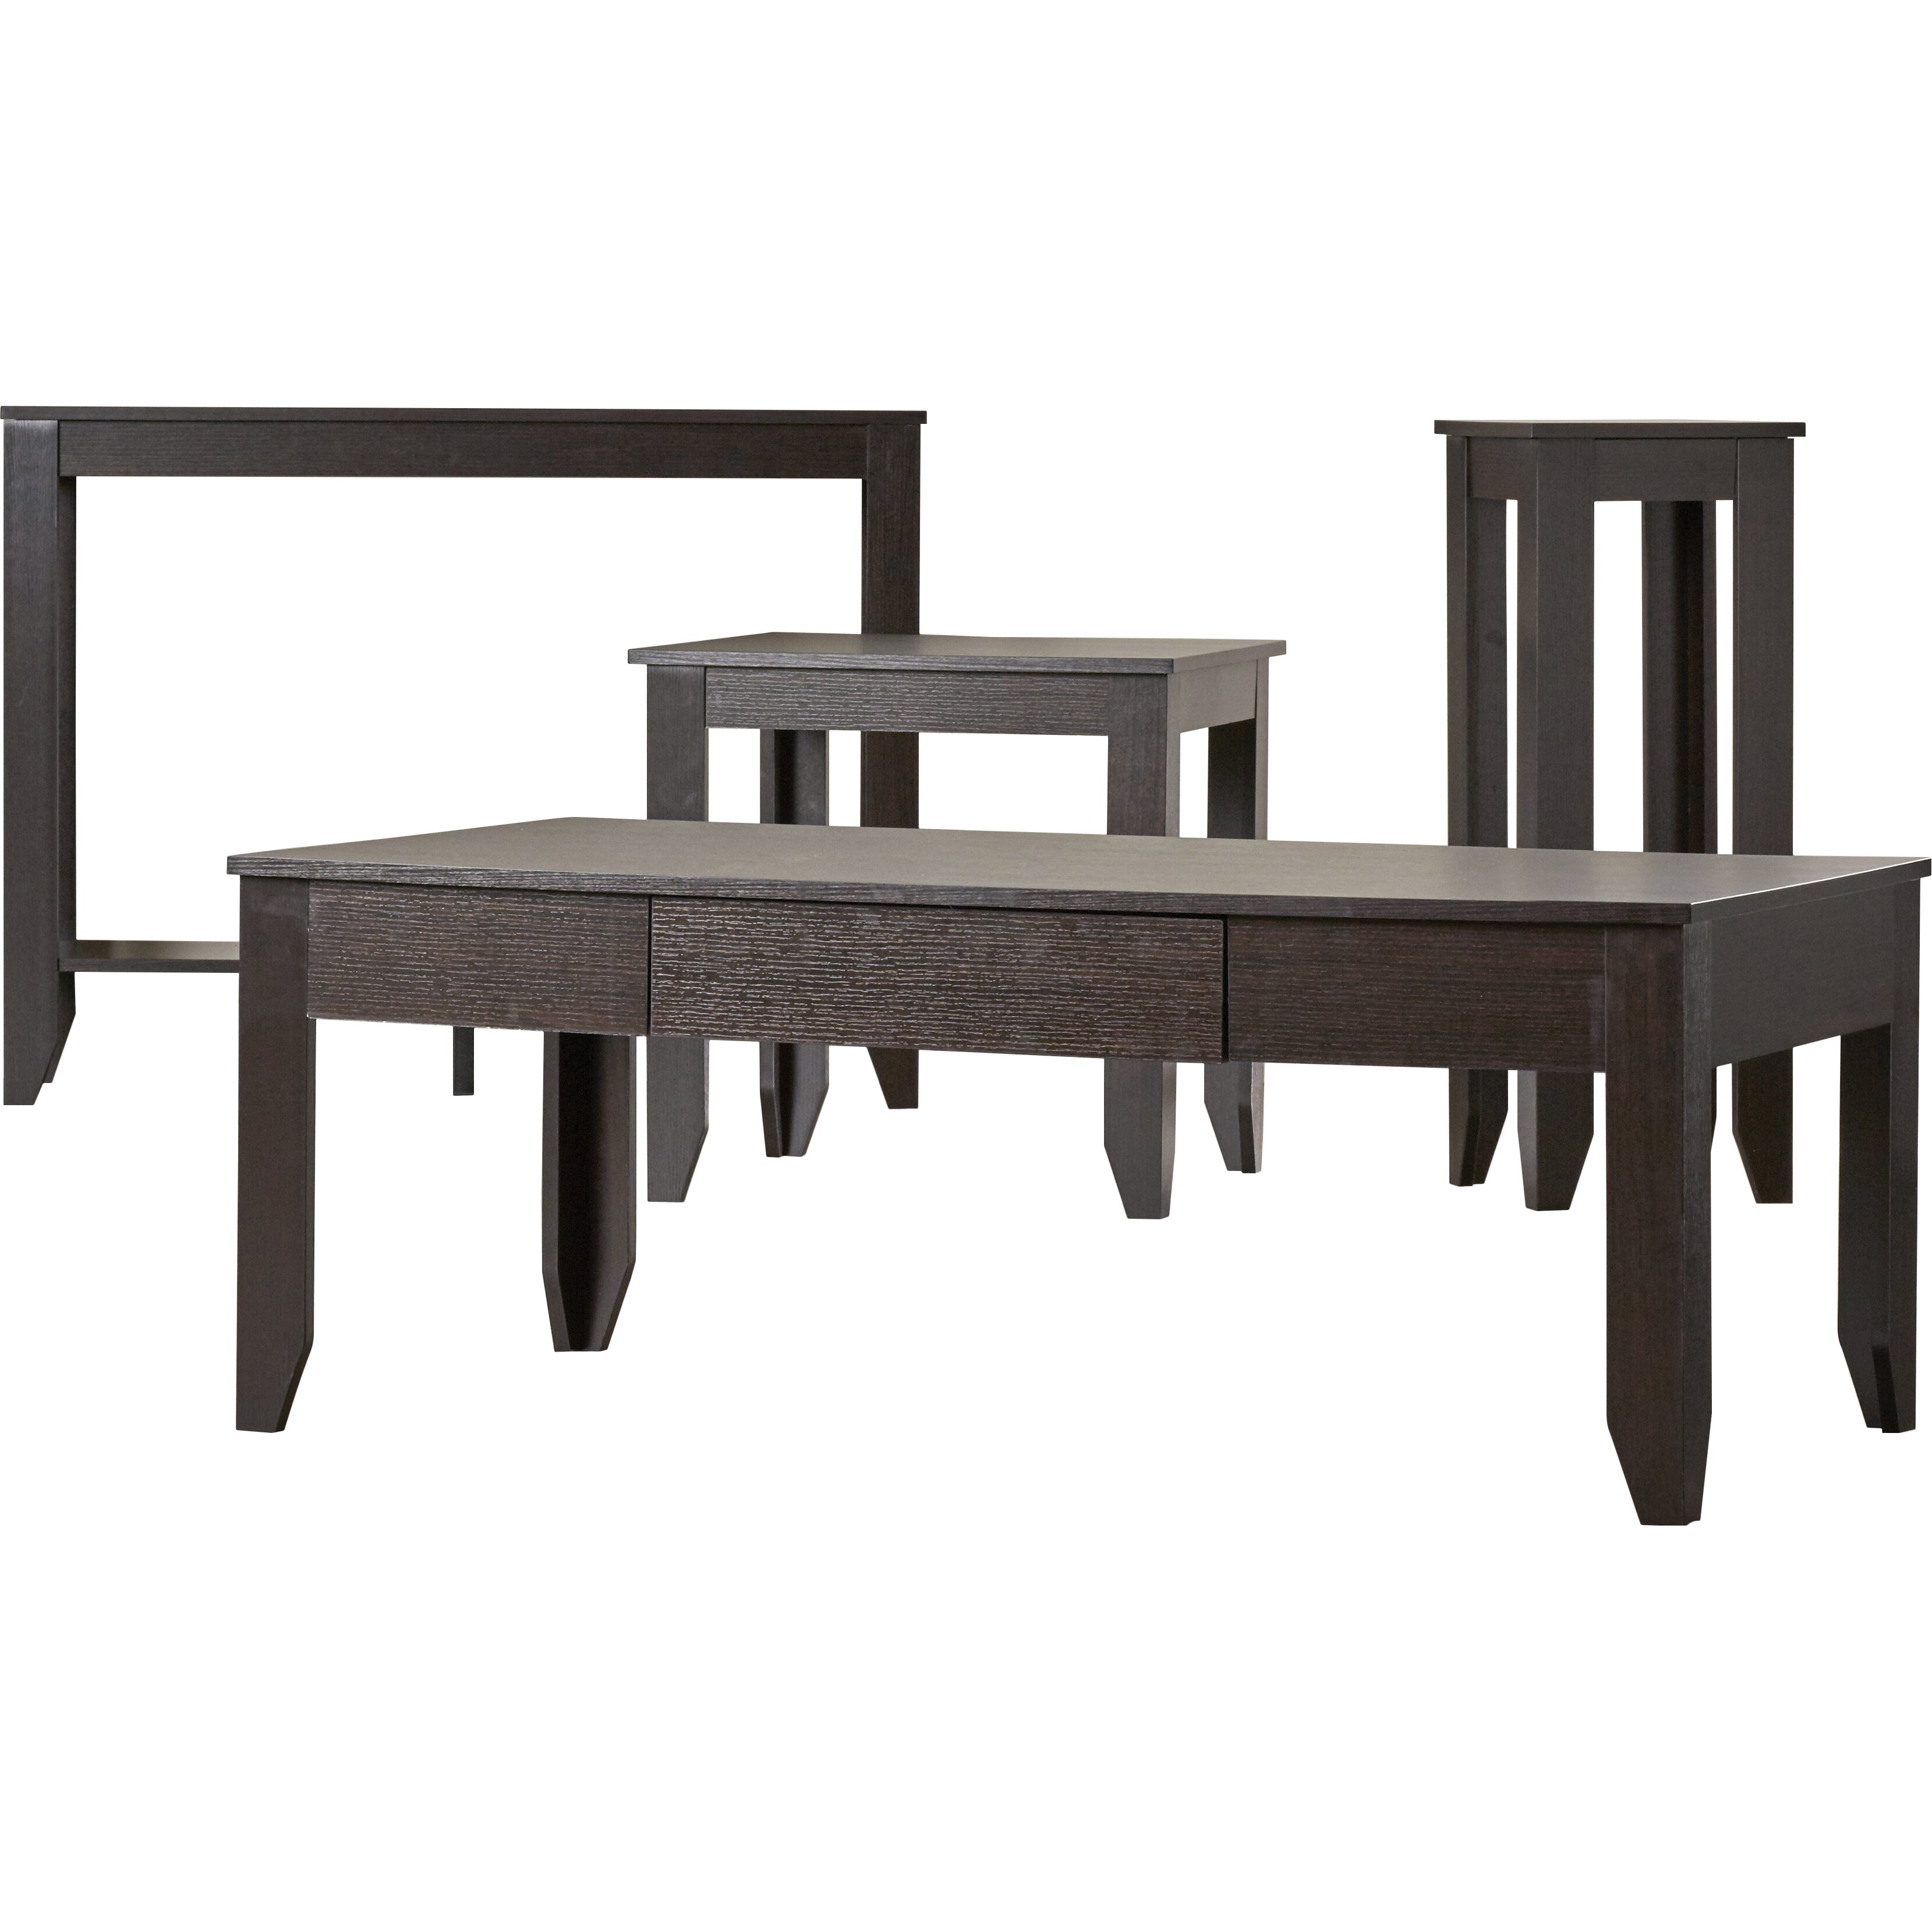 Zipcode design kaylee 4 piece coffee table set reviews for 4 piece living room table set